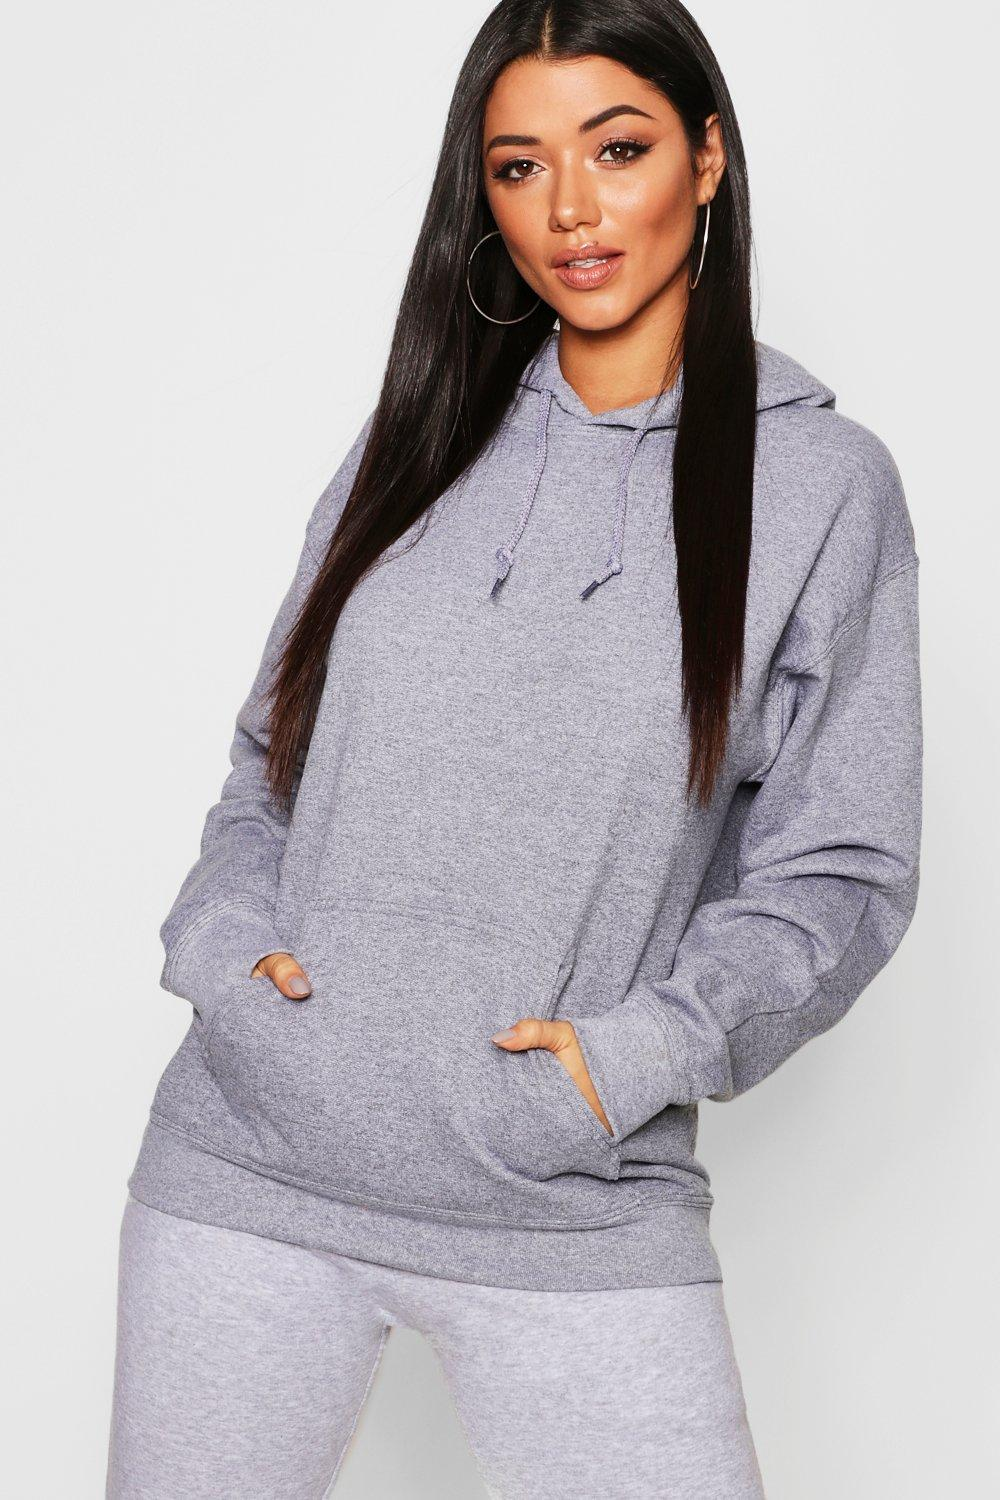 Womens Oversized Hoodie - anthrazit - XL, Anthrazit - Boohoo.com